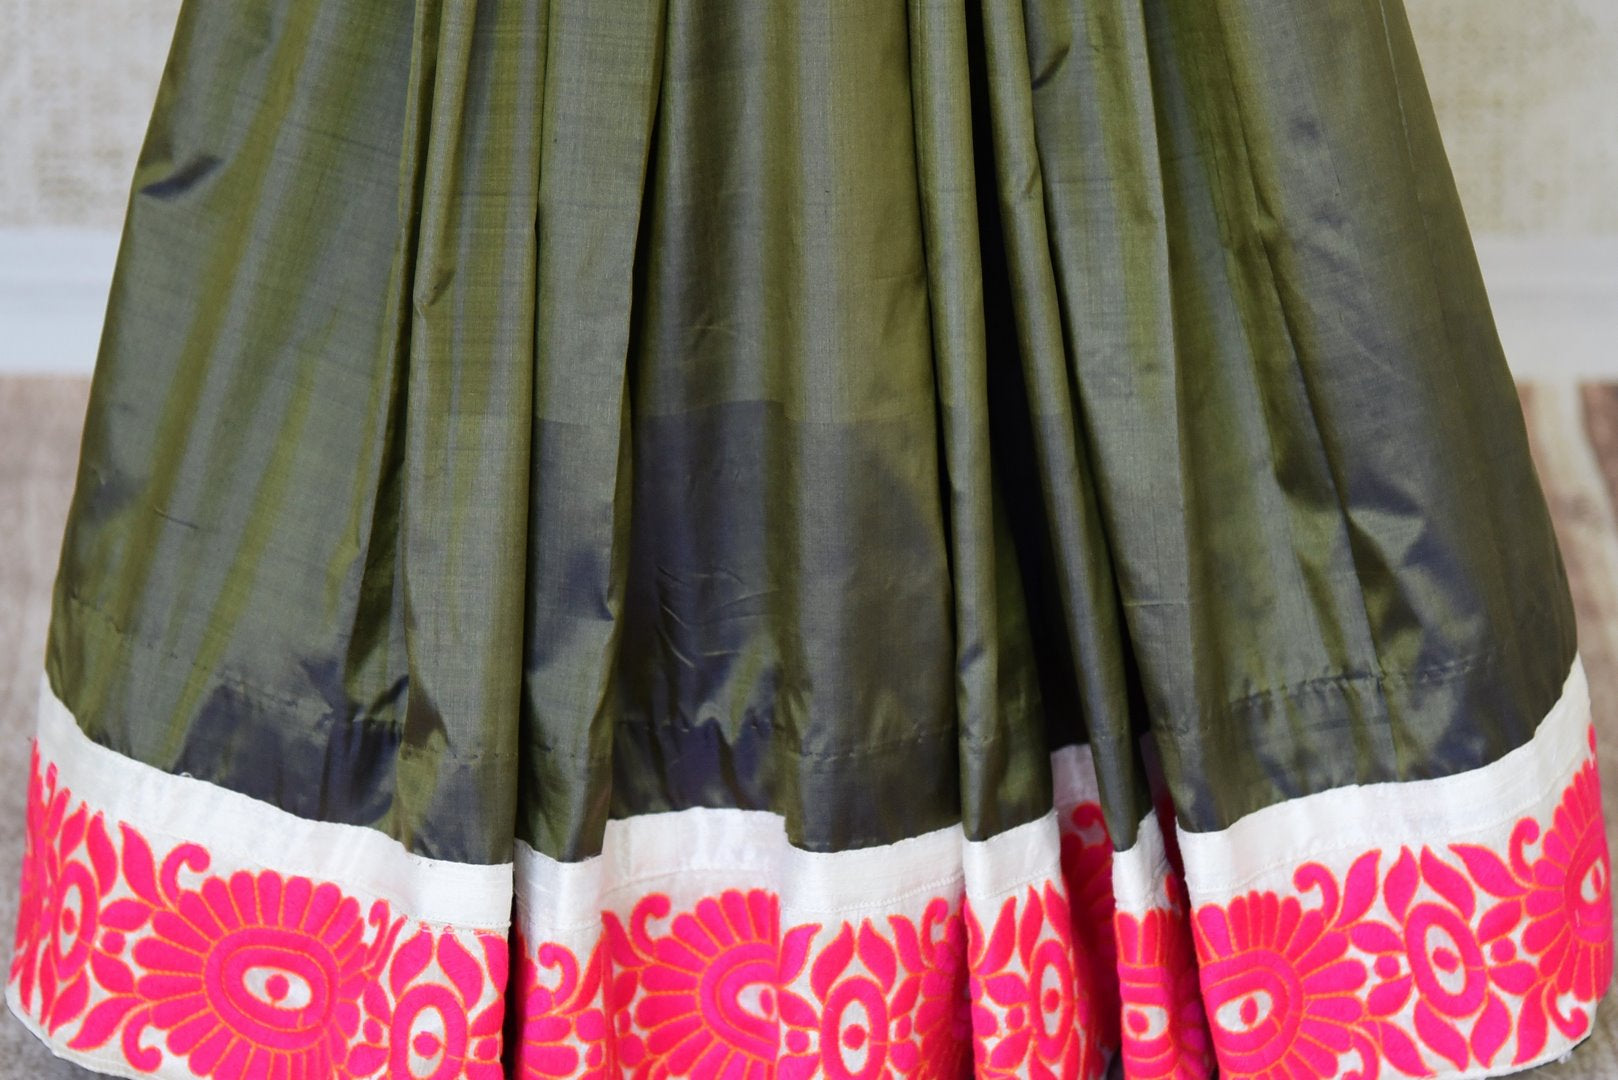 Buy green silk saree online in USA with saree blouse. Find an exquisite range of Banarasi sarees with blouses in USA at Pure Elegance Indian clothing store. Enhance your ethnic look with a variety of silk saris, Kanchipuram sarees, and Indian jewelry available at our online store.-pleats